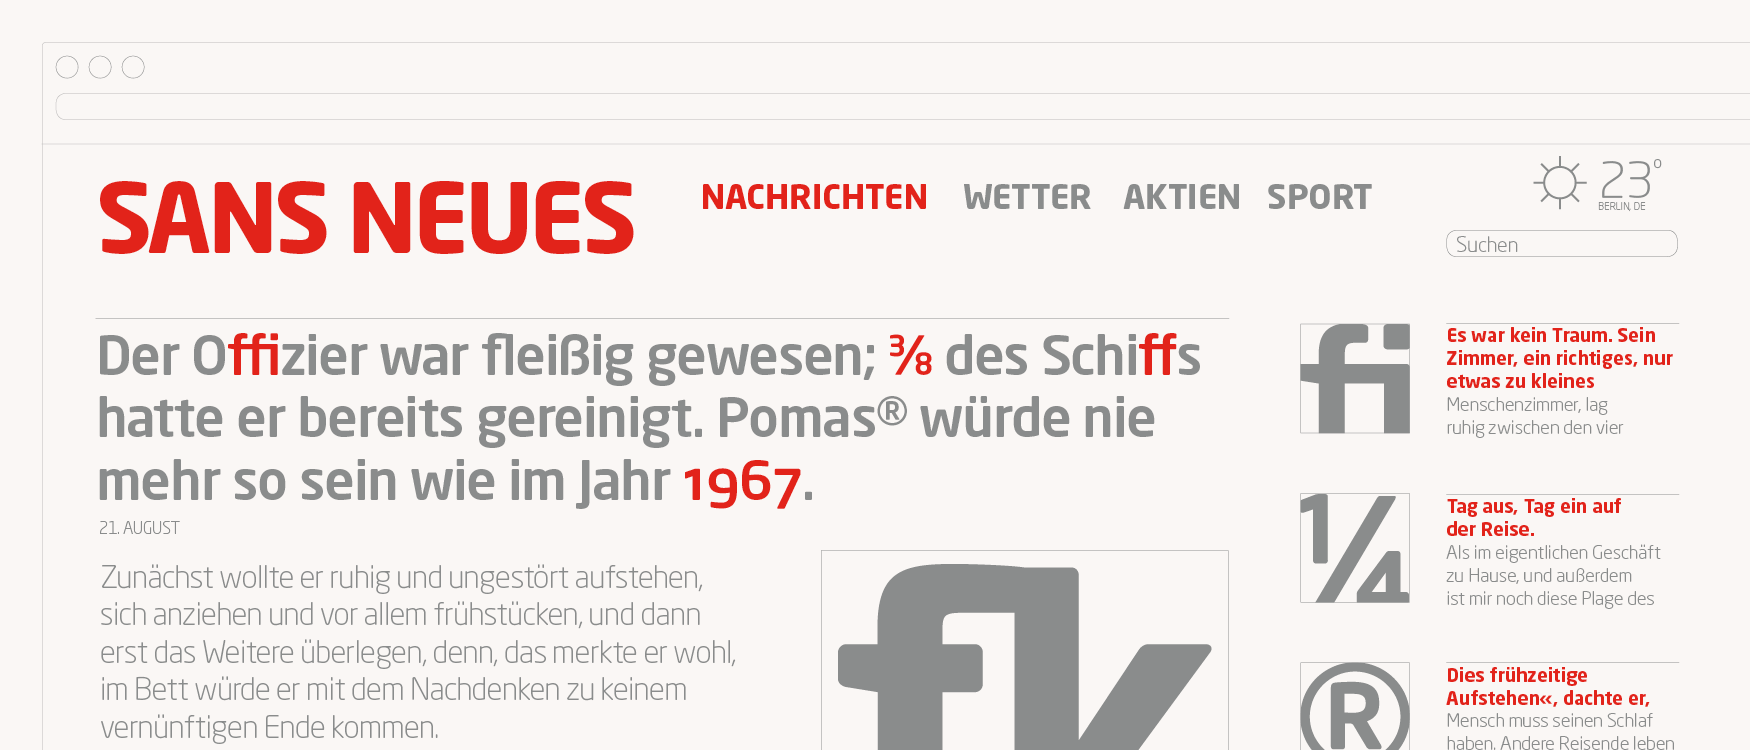 monotype_fonts_fonts-for-web_opentype_german